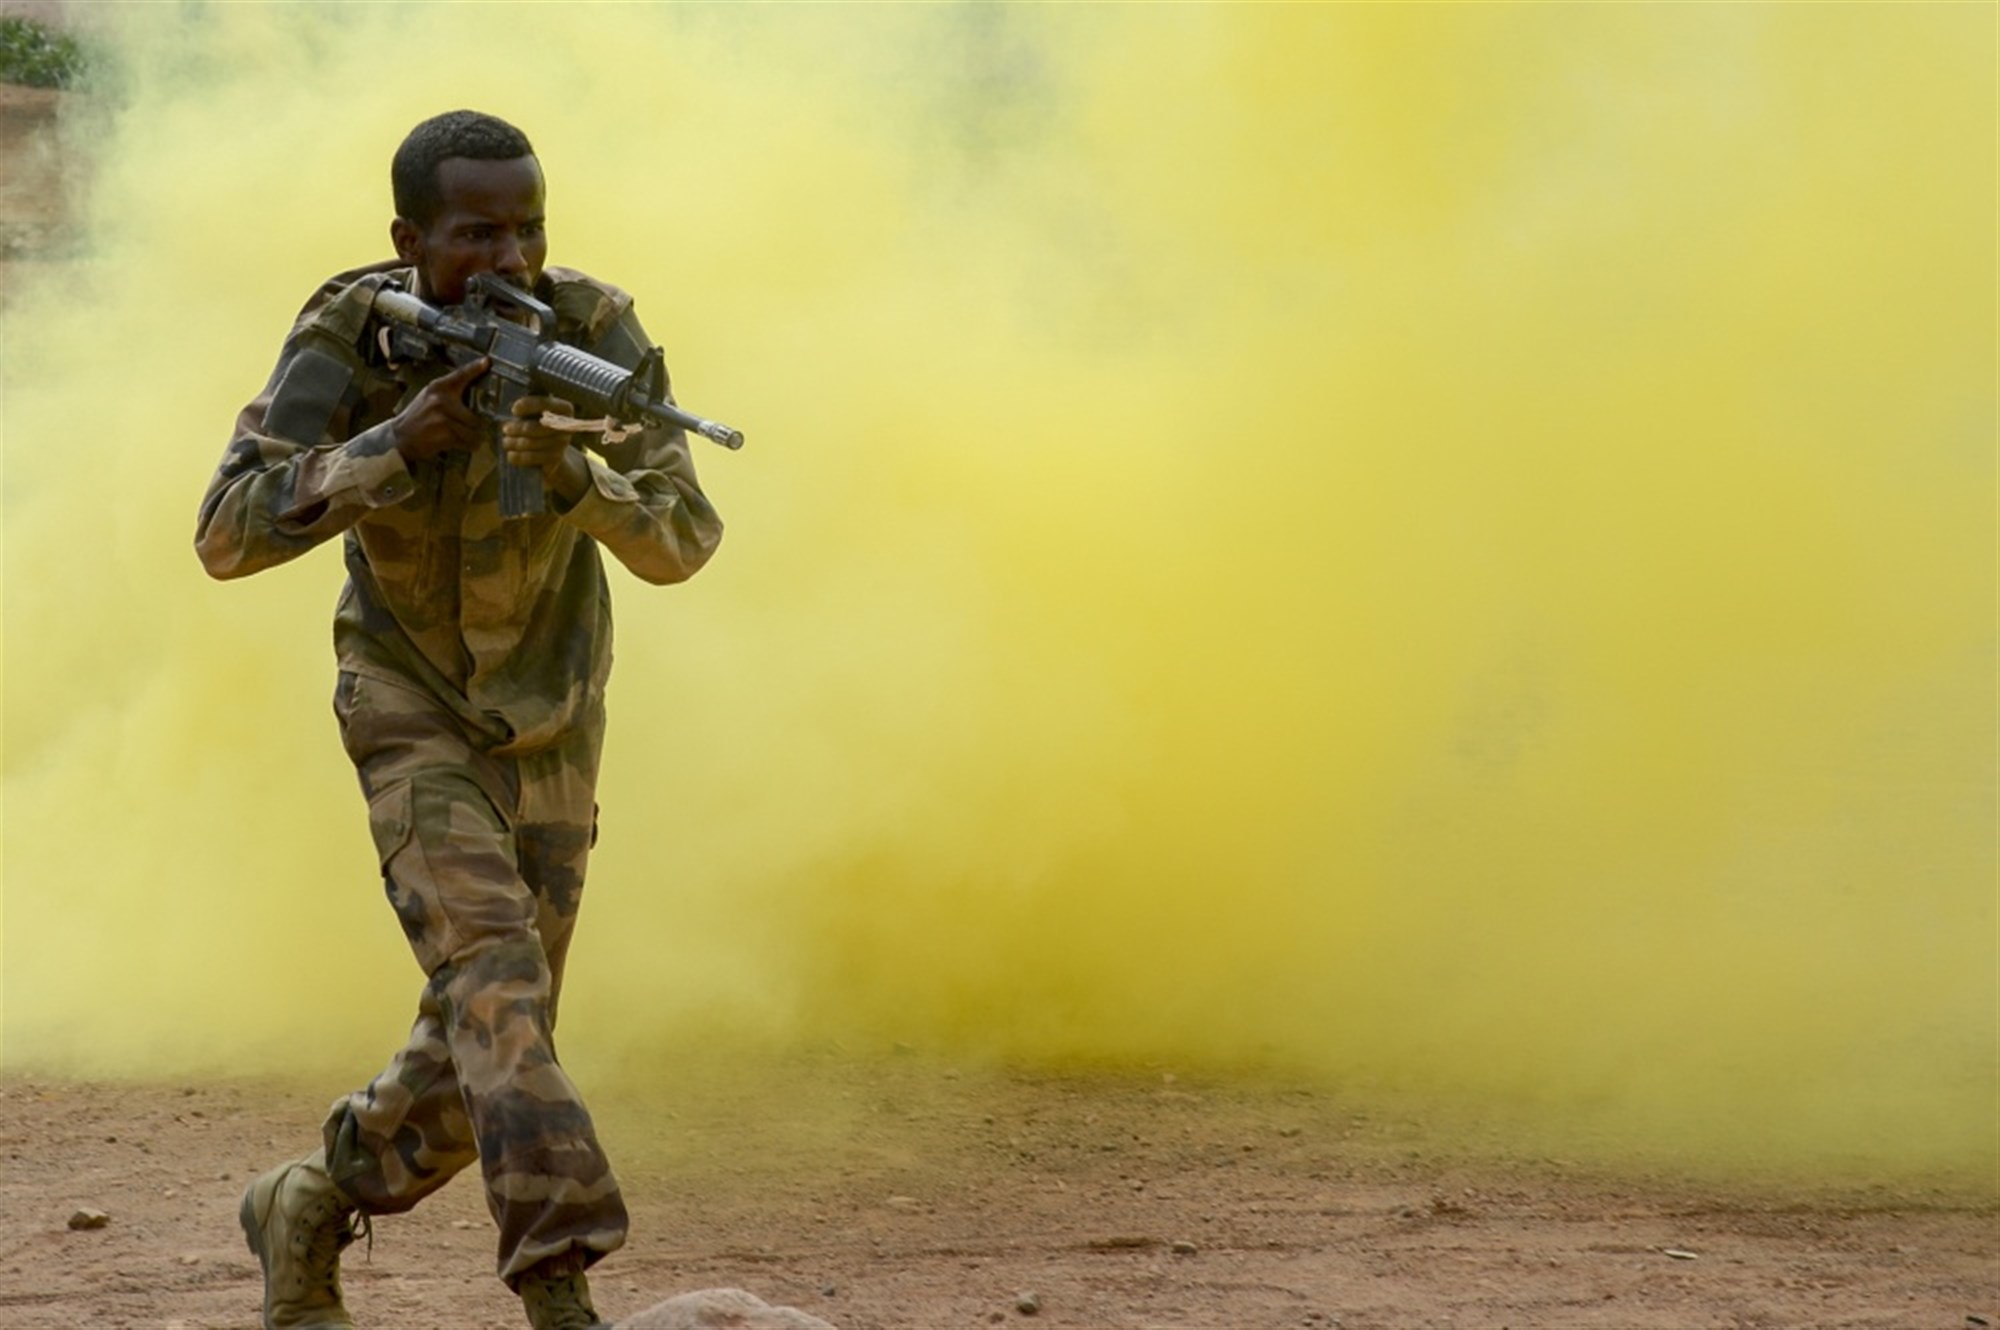 A Djiboutian soldier reacts to simulated contact during the culminating exercise of a five-week training cycle for the newly formed Rapid Intervention Battalion (RIB), a Djiboutian army crisis response unit, at a site outside Djibouti City, May 3, 2018. U.S. Army Soldiers from Alpha Company, 3rd Battalion, 141st Infantry Regiment, Texas National Guard, assigned to Combined Joint Task Force- Horn of Africa conducted the RIB training.